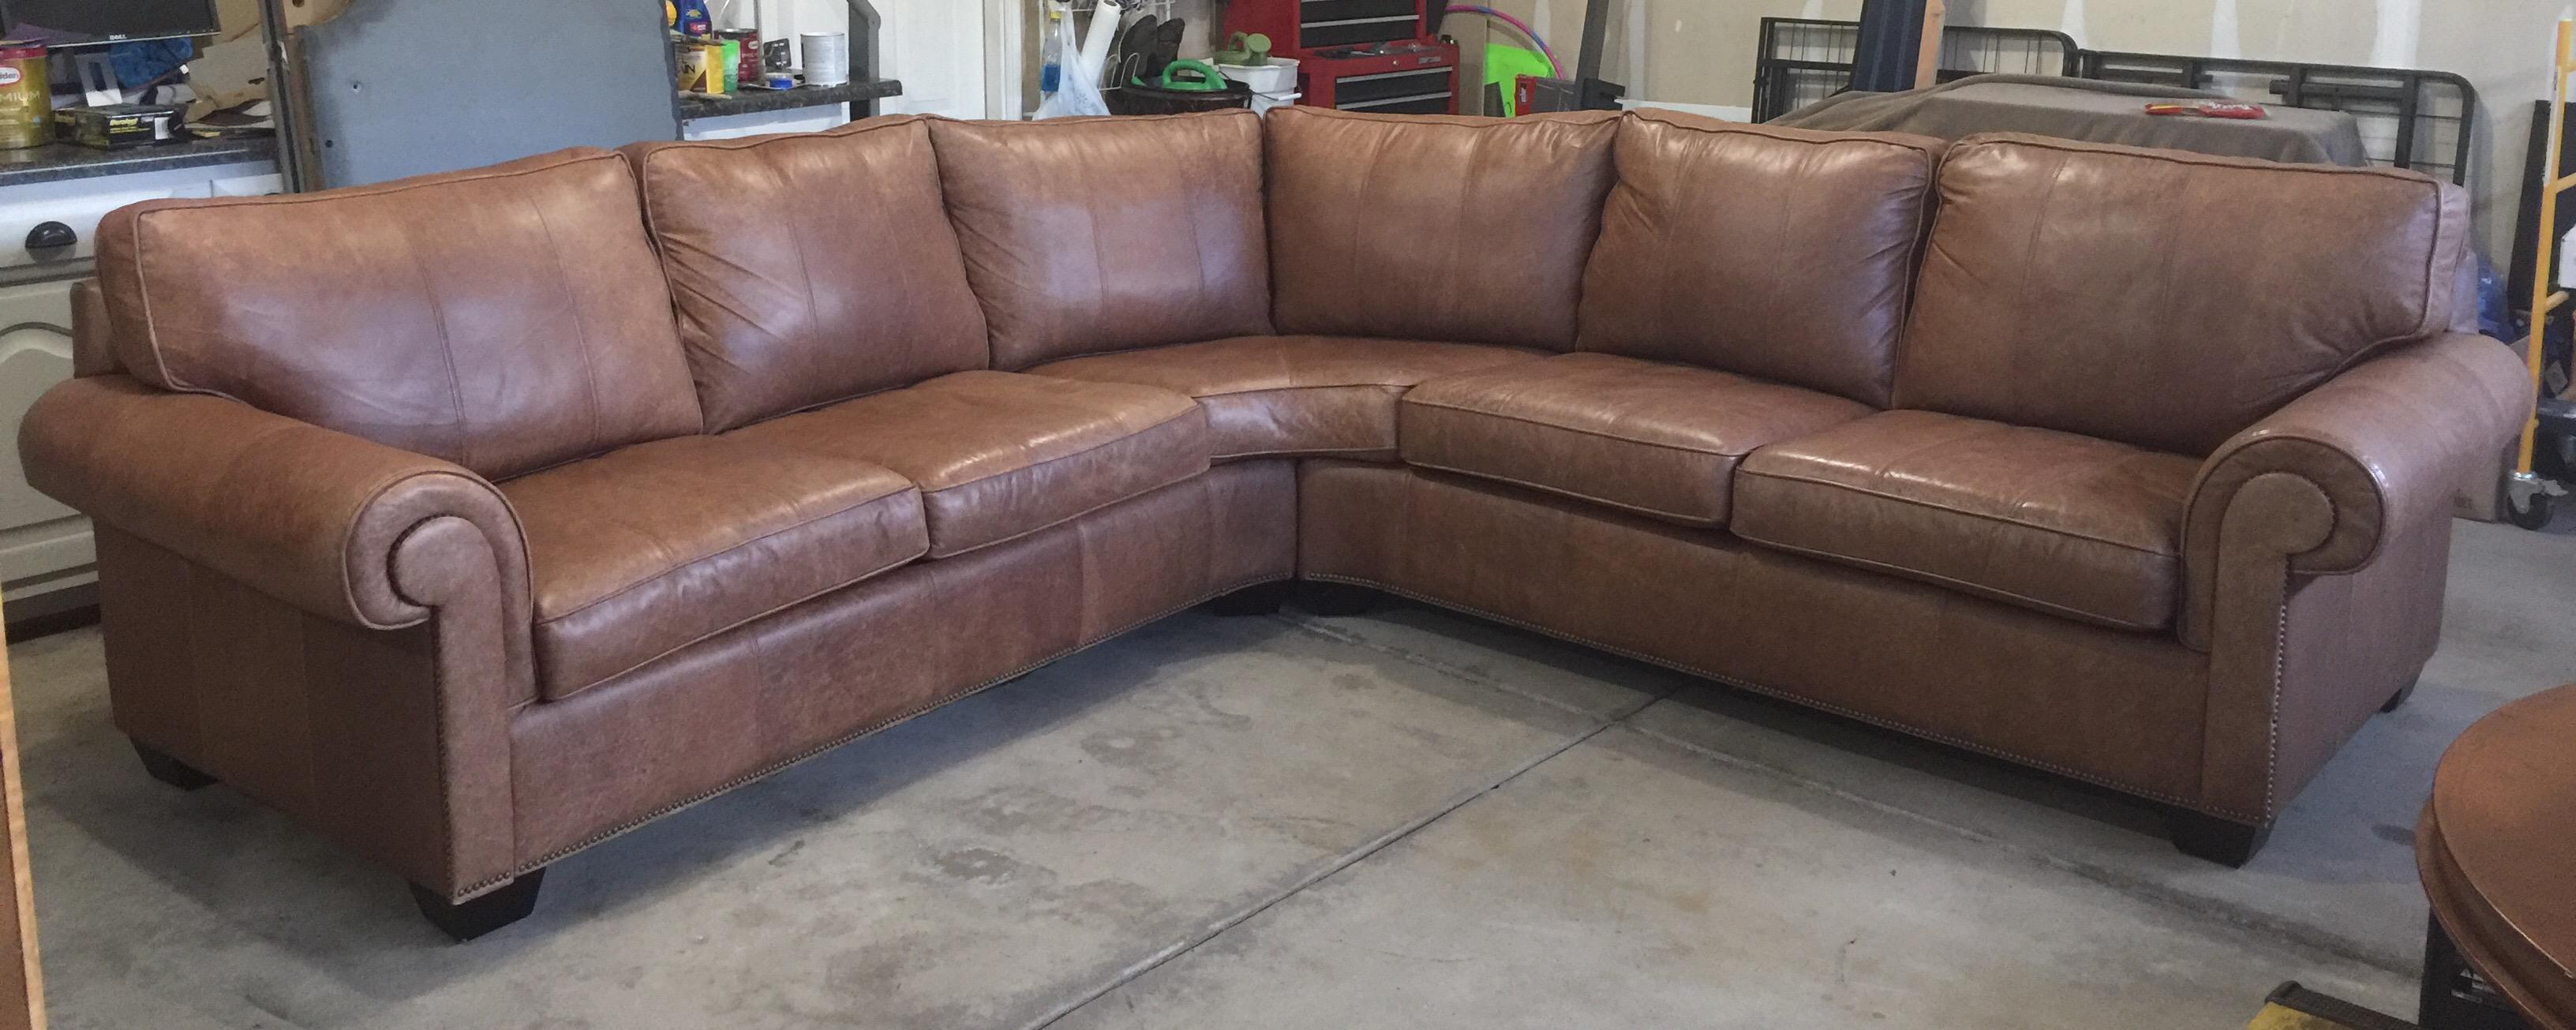 Bernhardt Essex Leather Sectional - Image 2 of 9  sc 1 st  Chairish : bernhardt leather sectional - Sectionals, Sofas & Couches